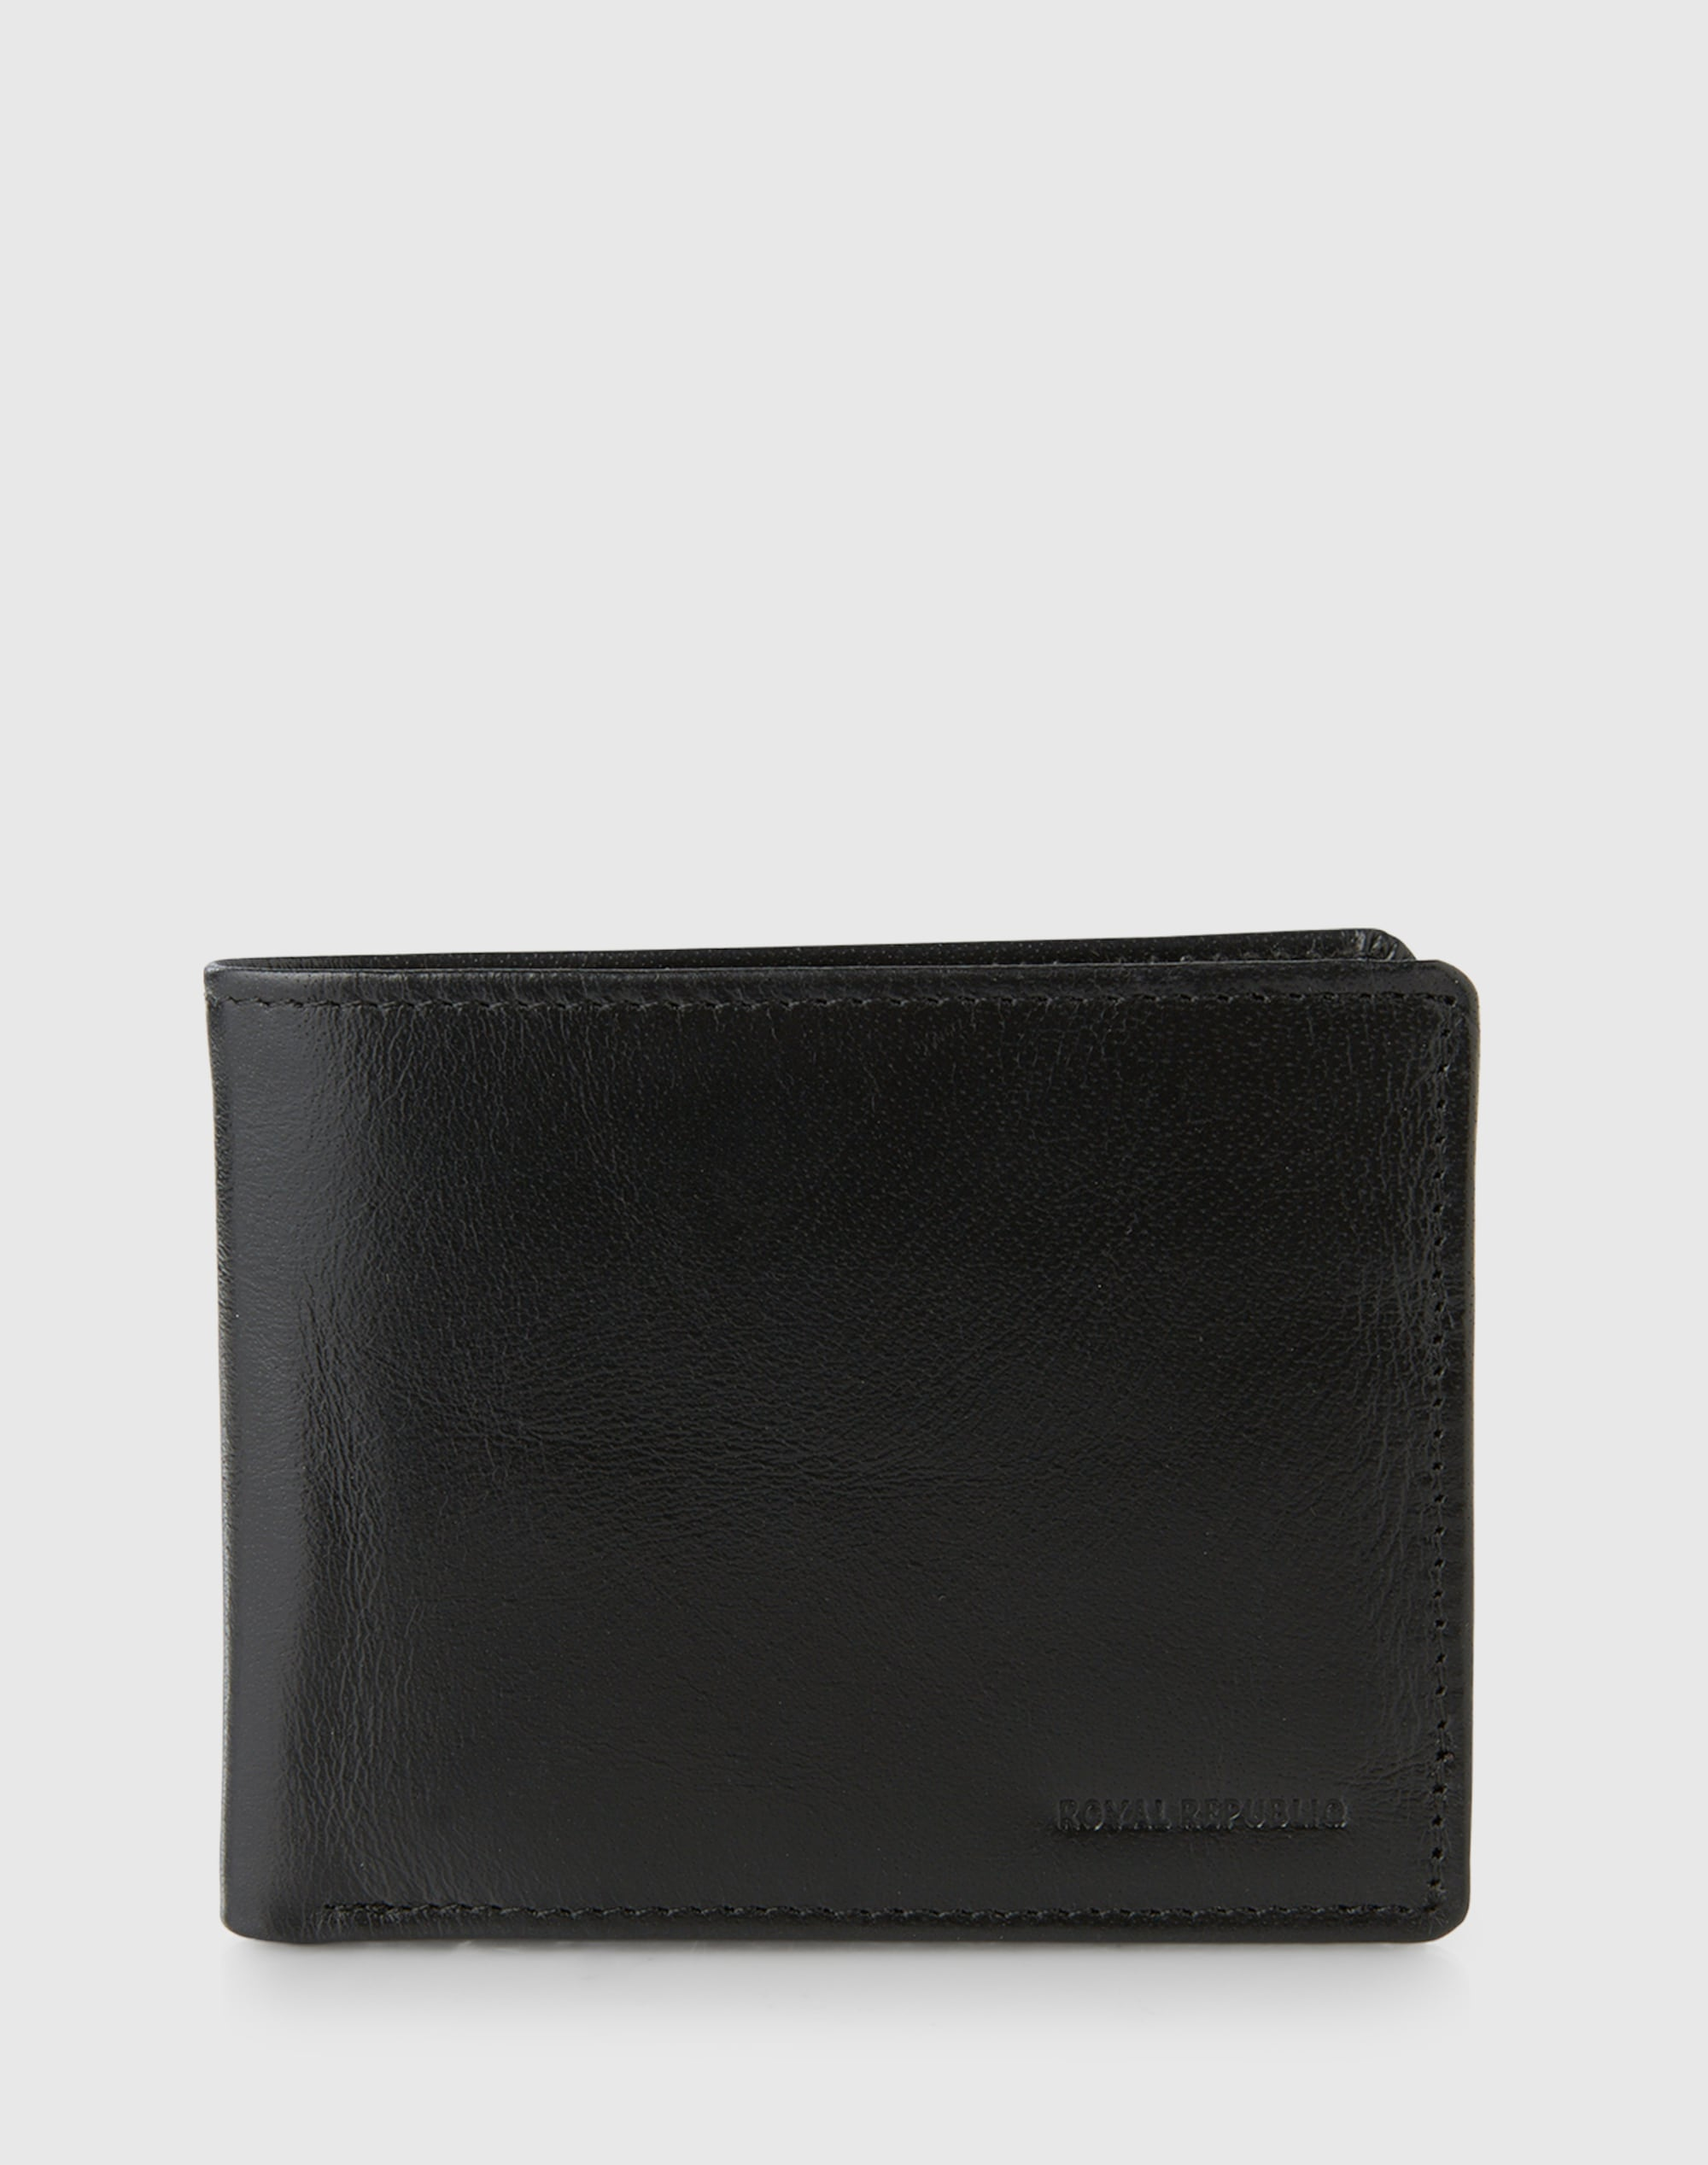 Portemonnee 'City wallet'